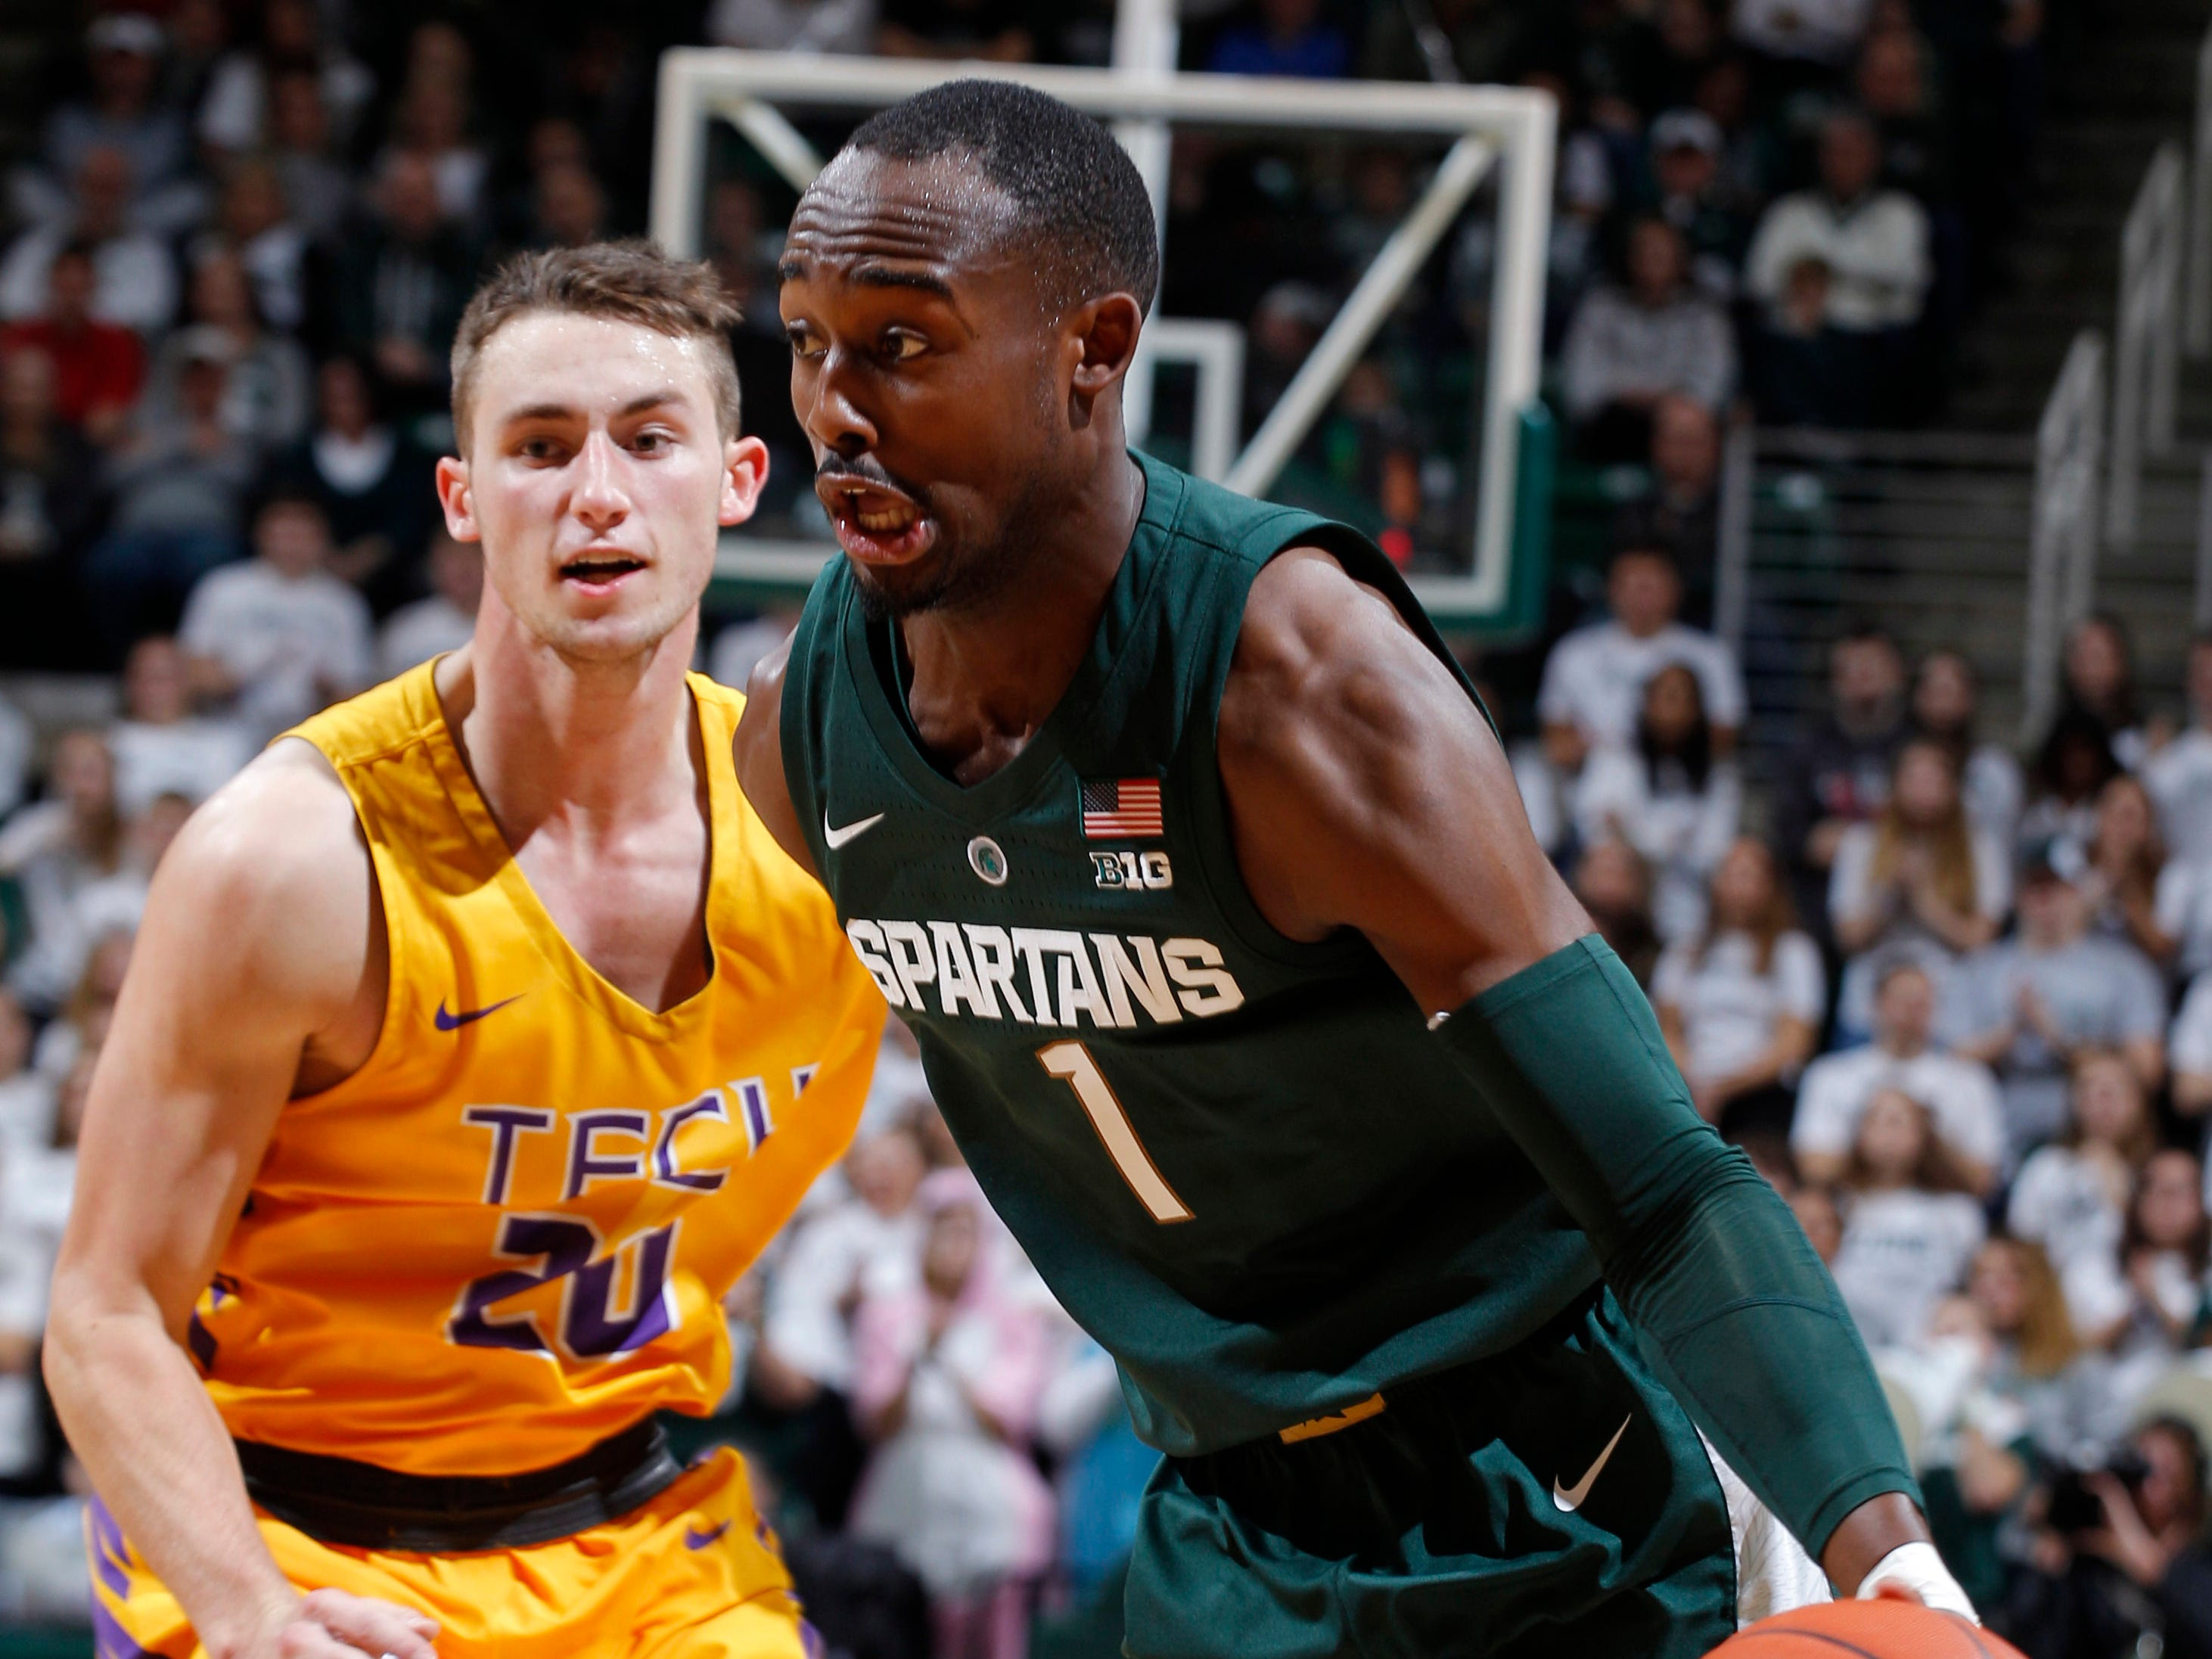 Michigan State's Joshua Langford, right, drives against Tennessee Tech's Hunter Vick during the first half of MSU's 101-33 win on Sunday, Nov. 18, 2018, in East Lansing.